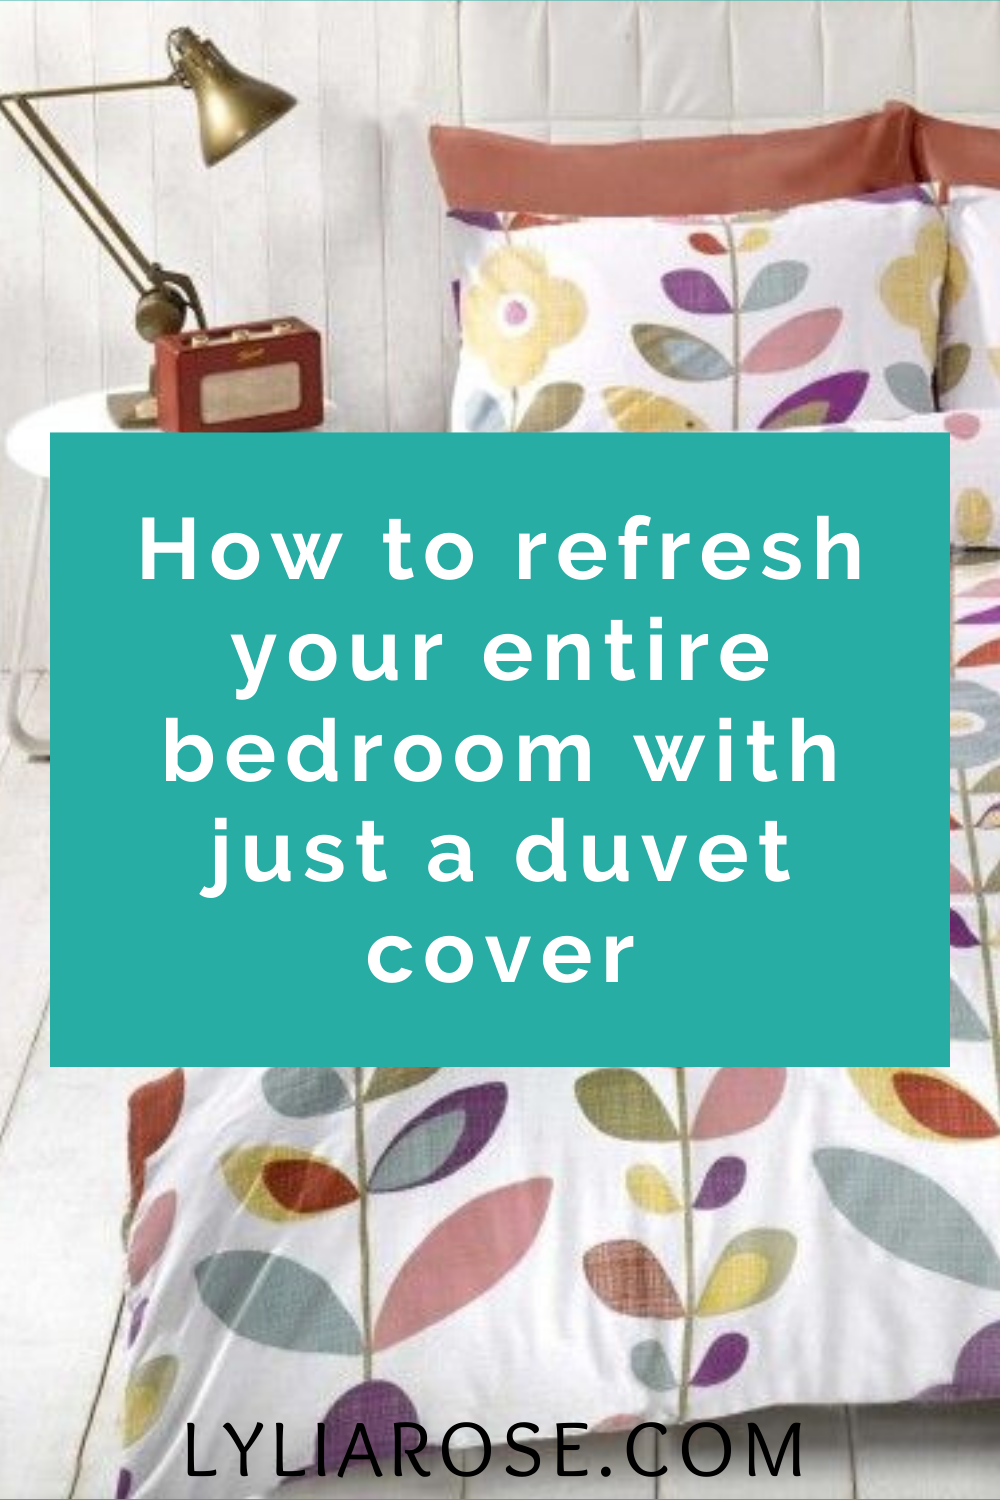 How to refresh your entire bedroom with just a duvet cover